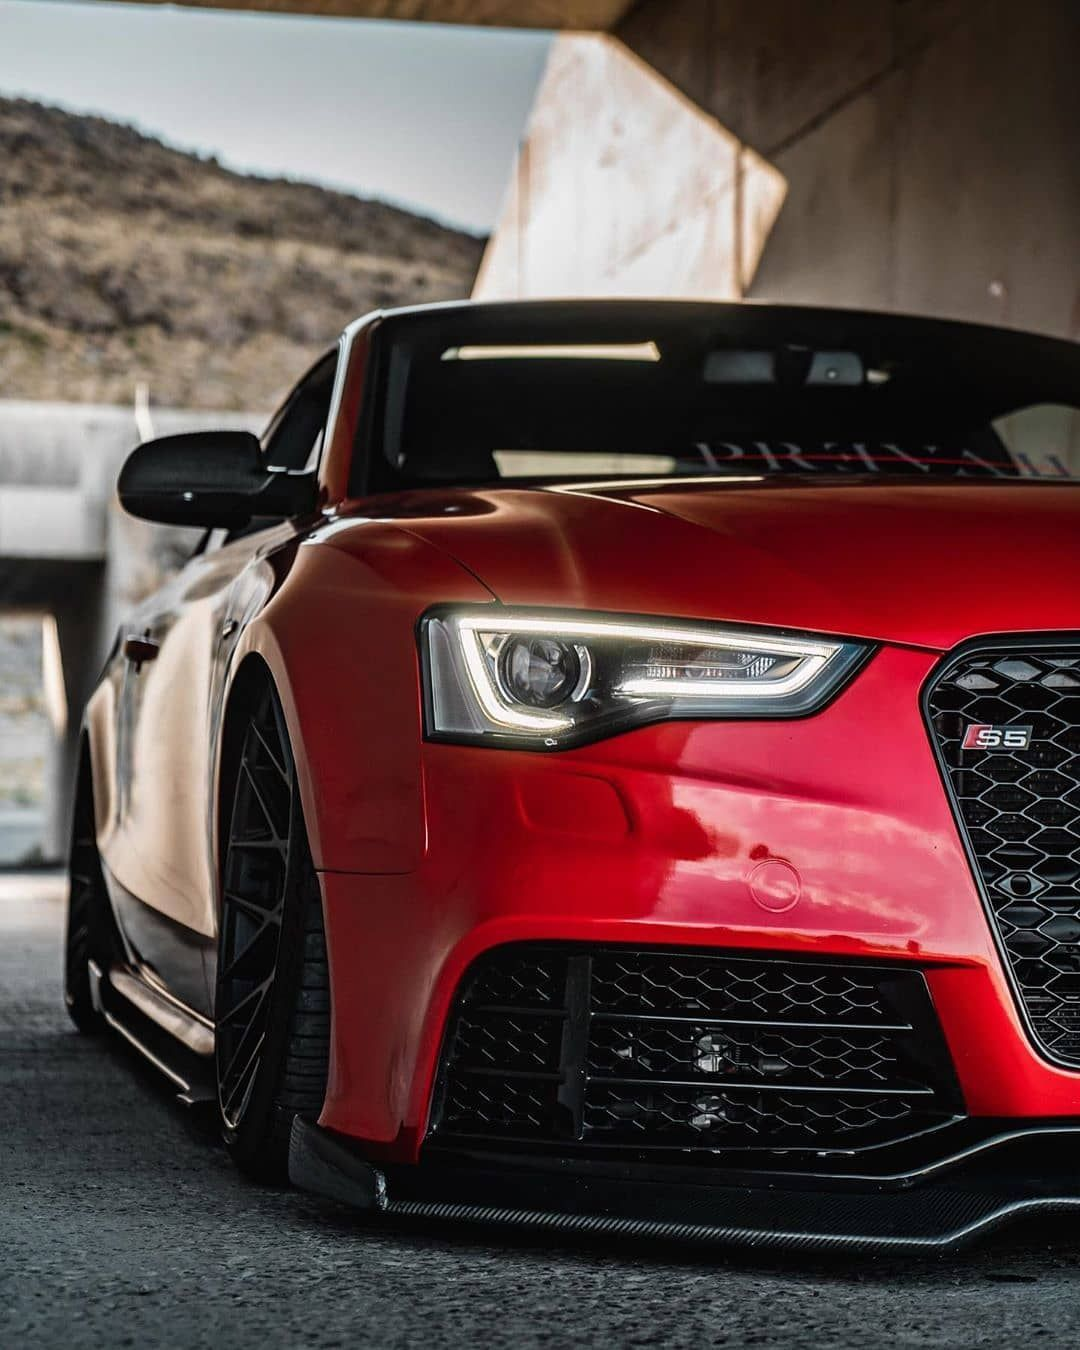 That Stare That Stance Rate This Audi From 1 100 Get 10 Discount For Audi Tuning Parts By Ultimatecustomsuk With Code Audilo In 2020 Audi Audi Sport Audi S5